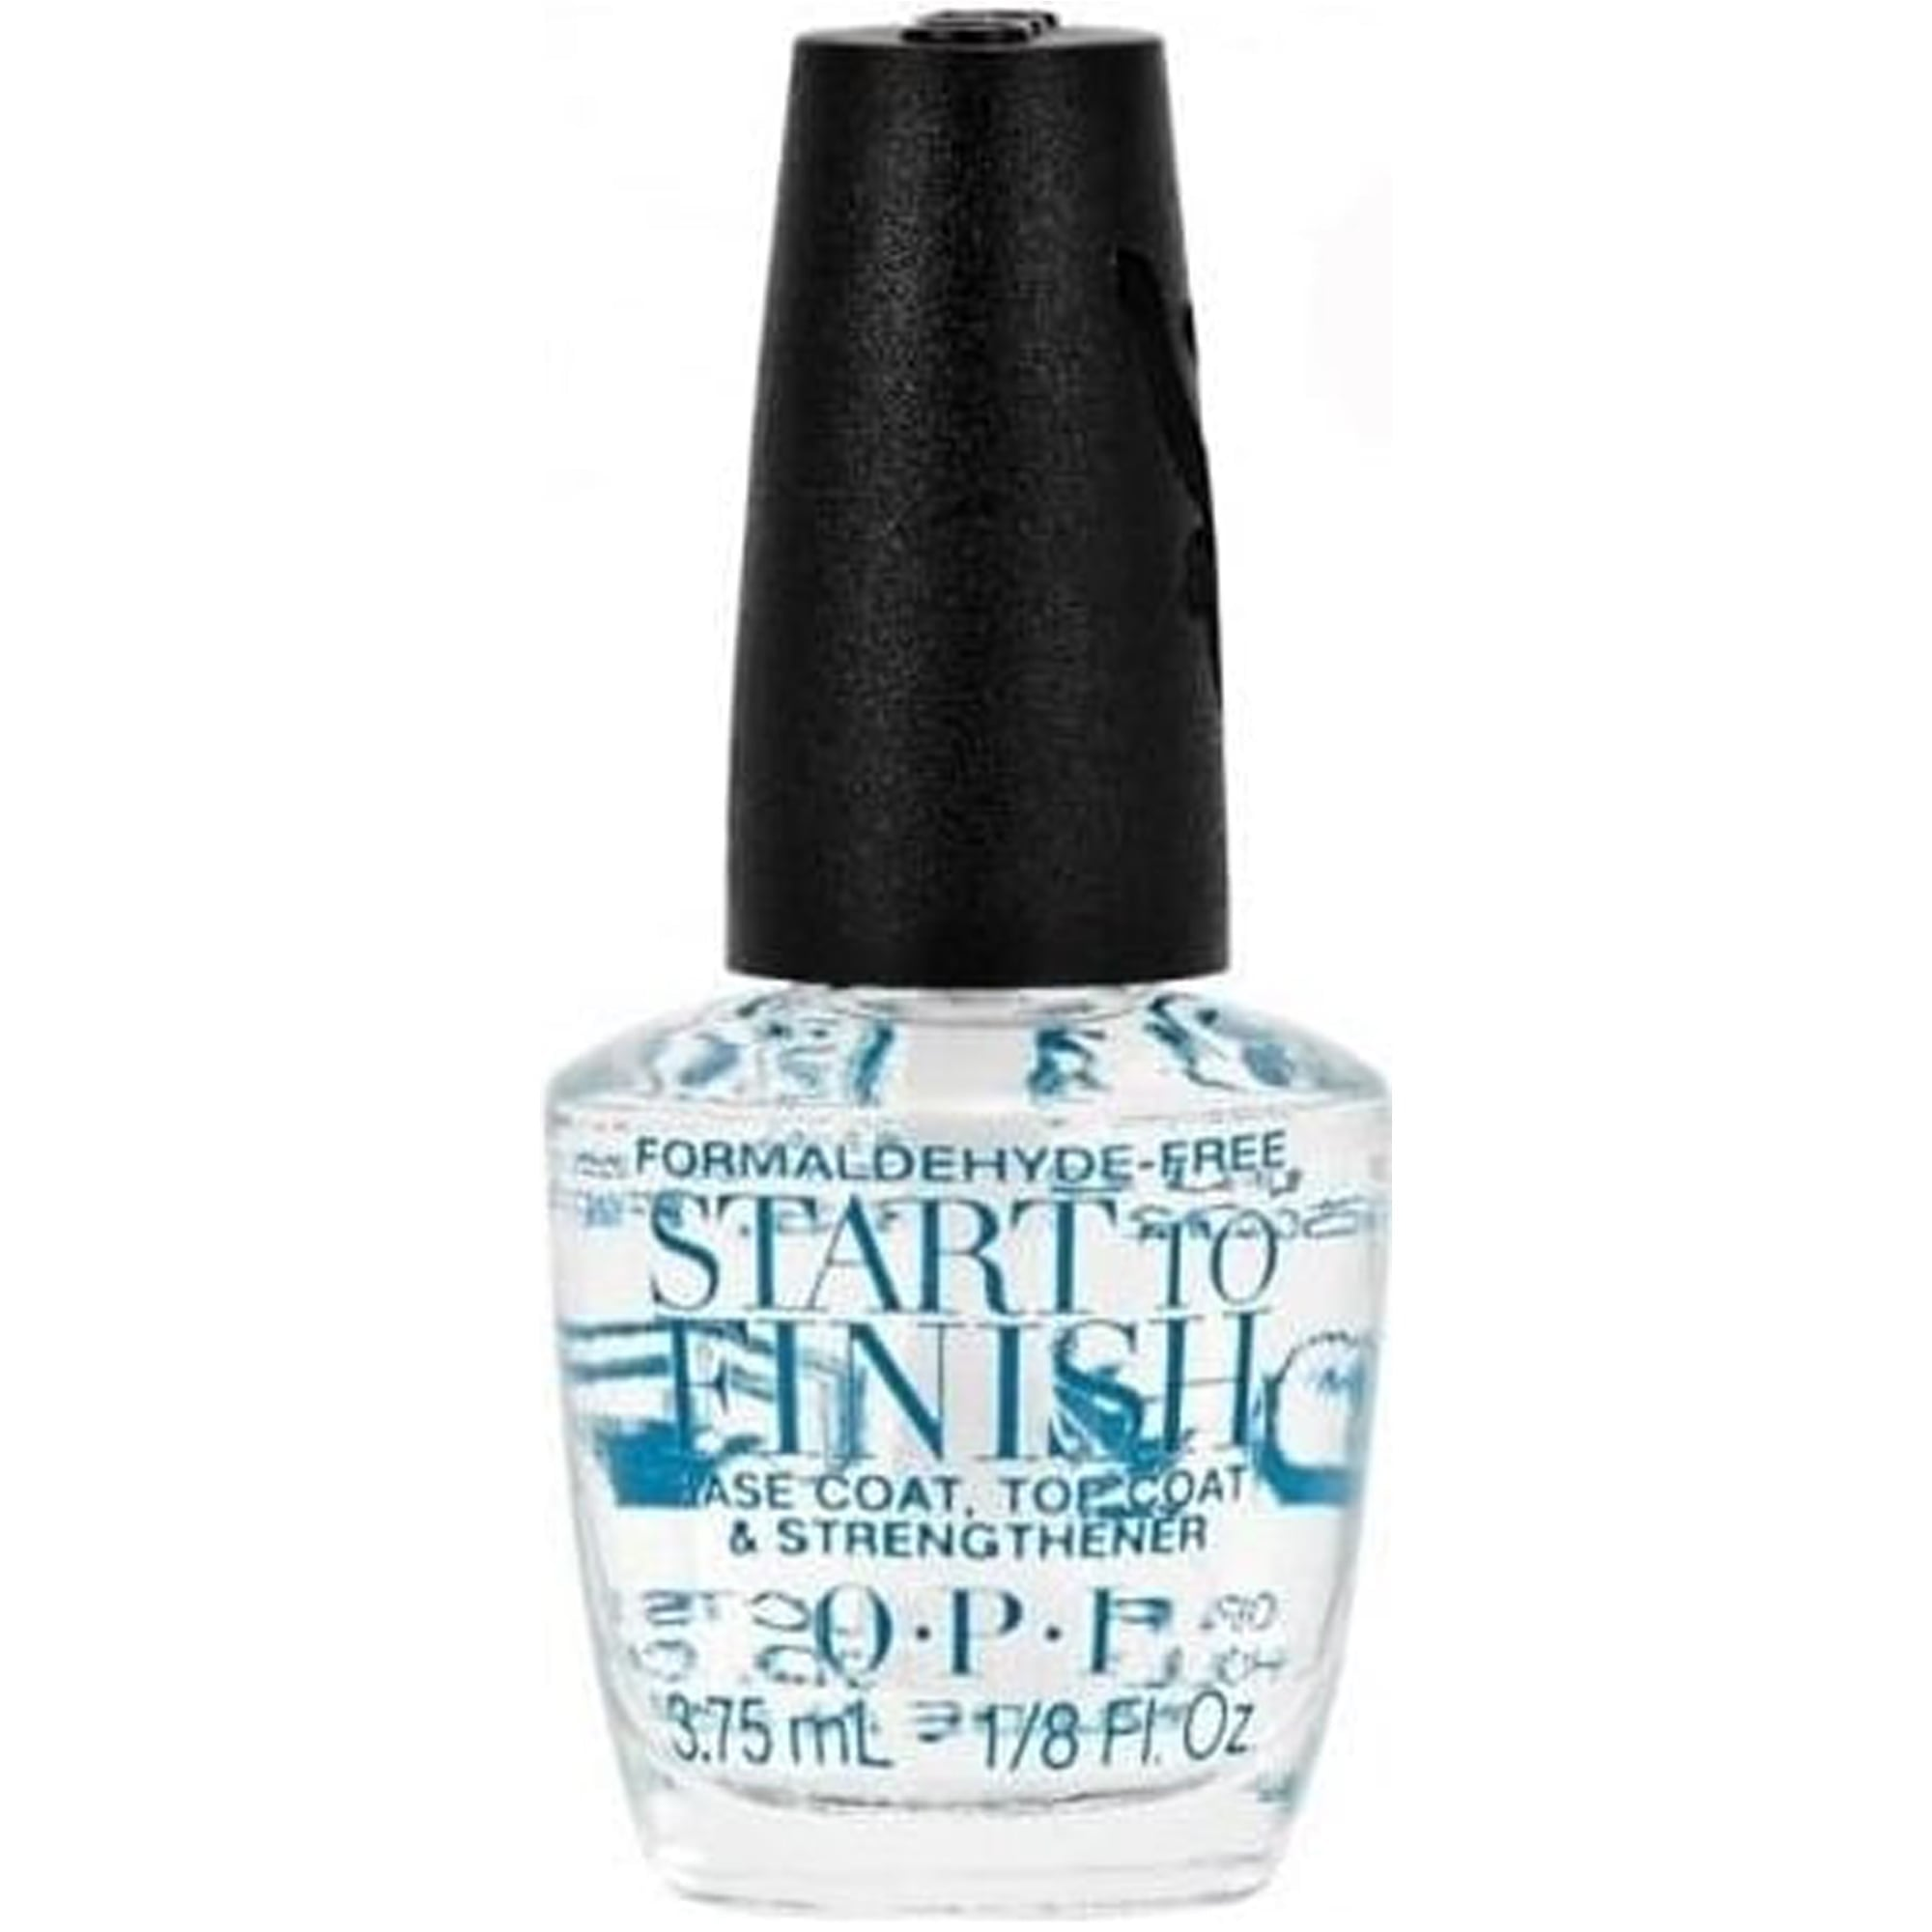 Love OPI XOXO - Mini Start To Finish Formaldehyde-Free (HR J28) 3.75ml